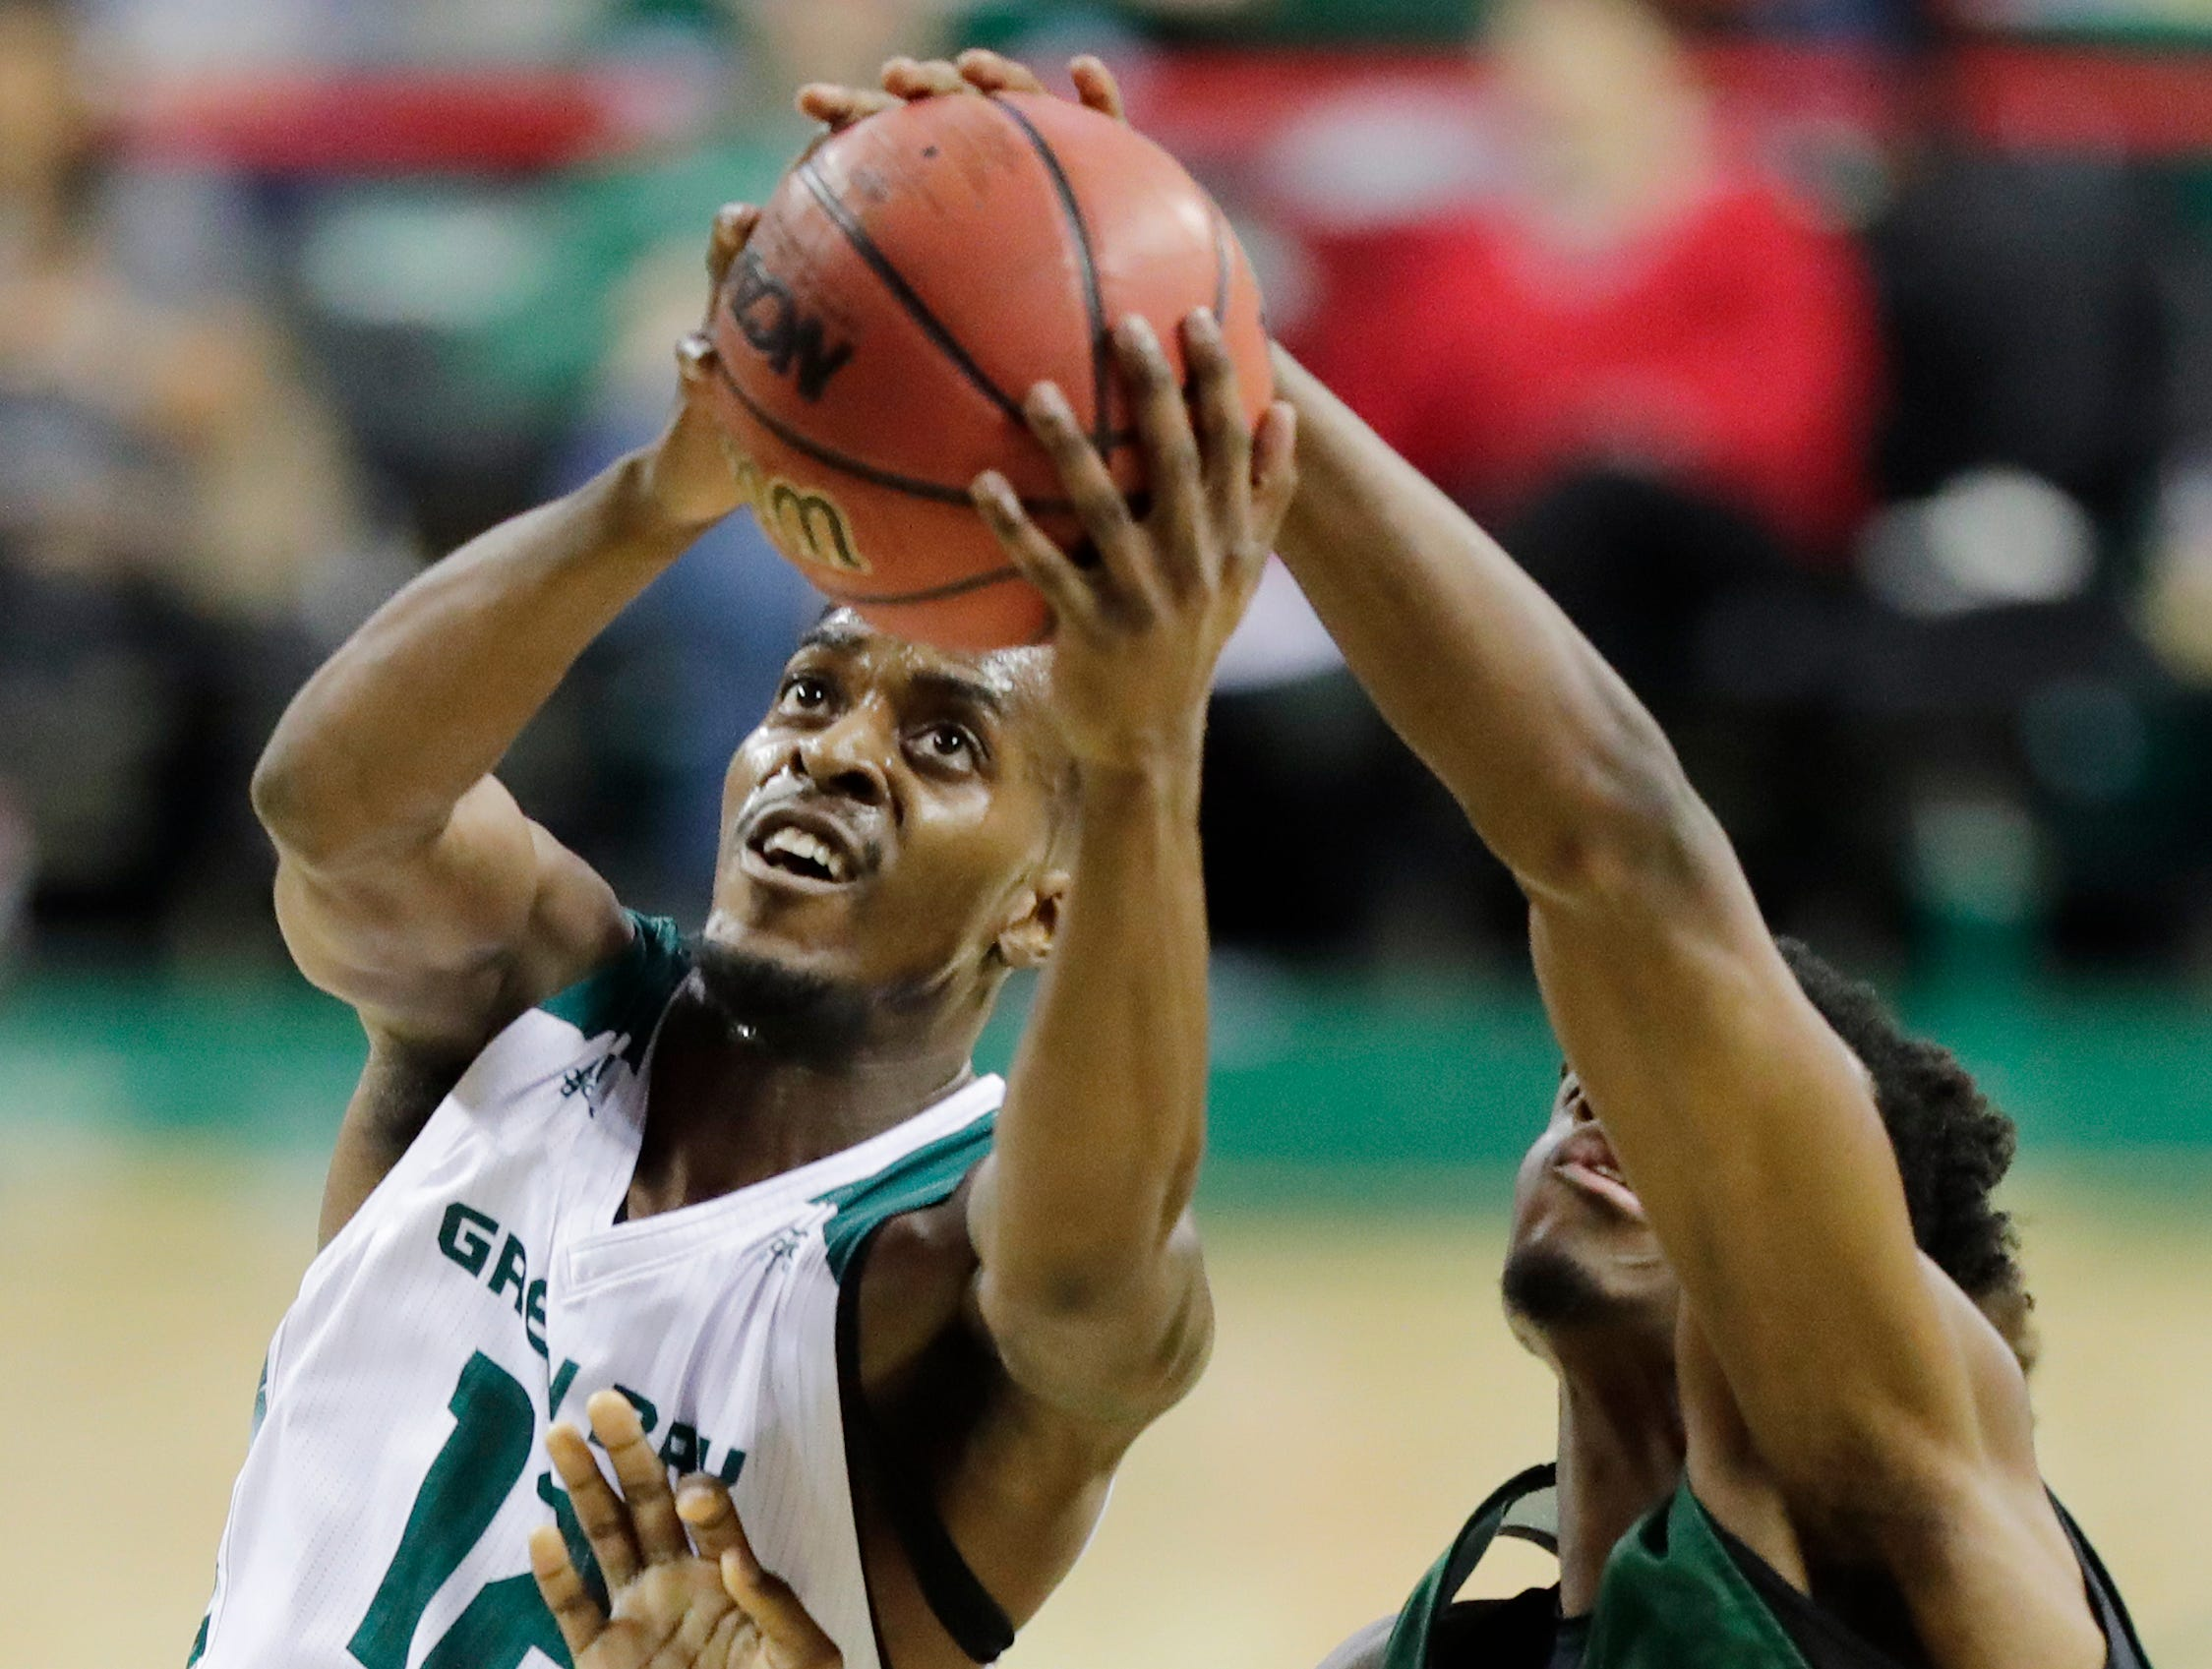 Green Bay Phoenix forward Josh McNair (12) drives to the basket against Cleveland State Vikings forward Deante Johnson (35) in a Horizon League basketball game at the Resch Center on Saturday, January 5, 2019 in Green Bay, Wis.